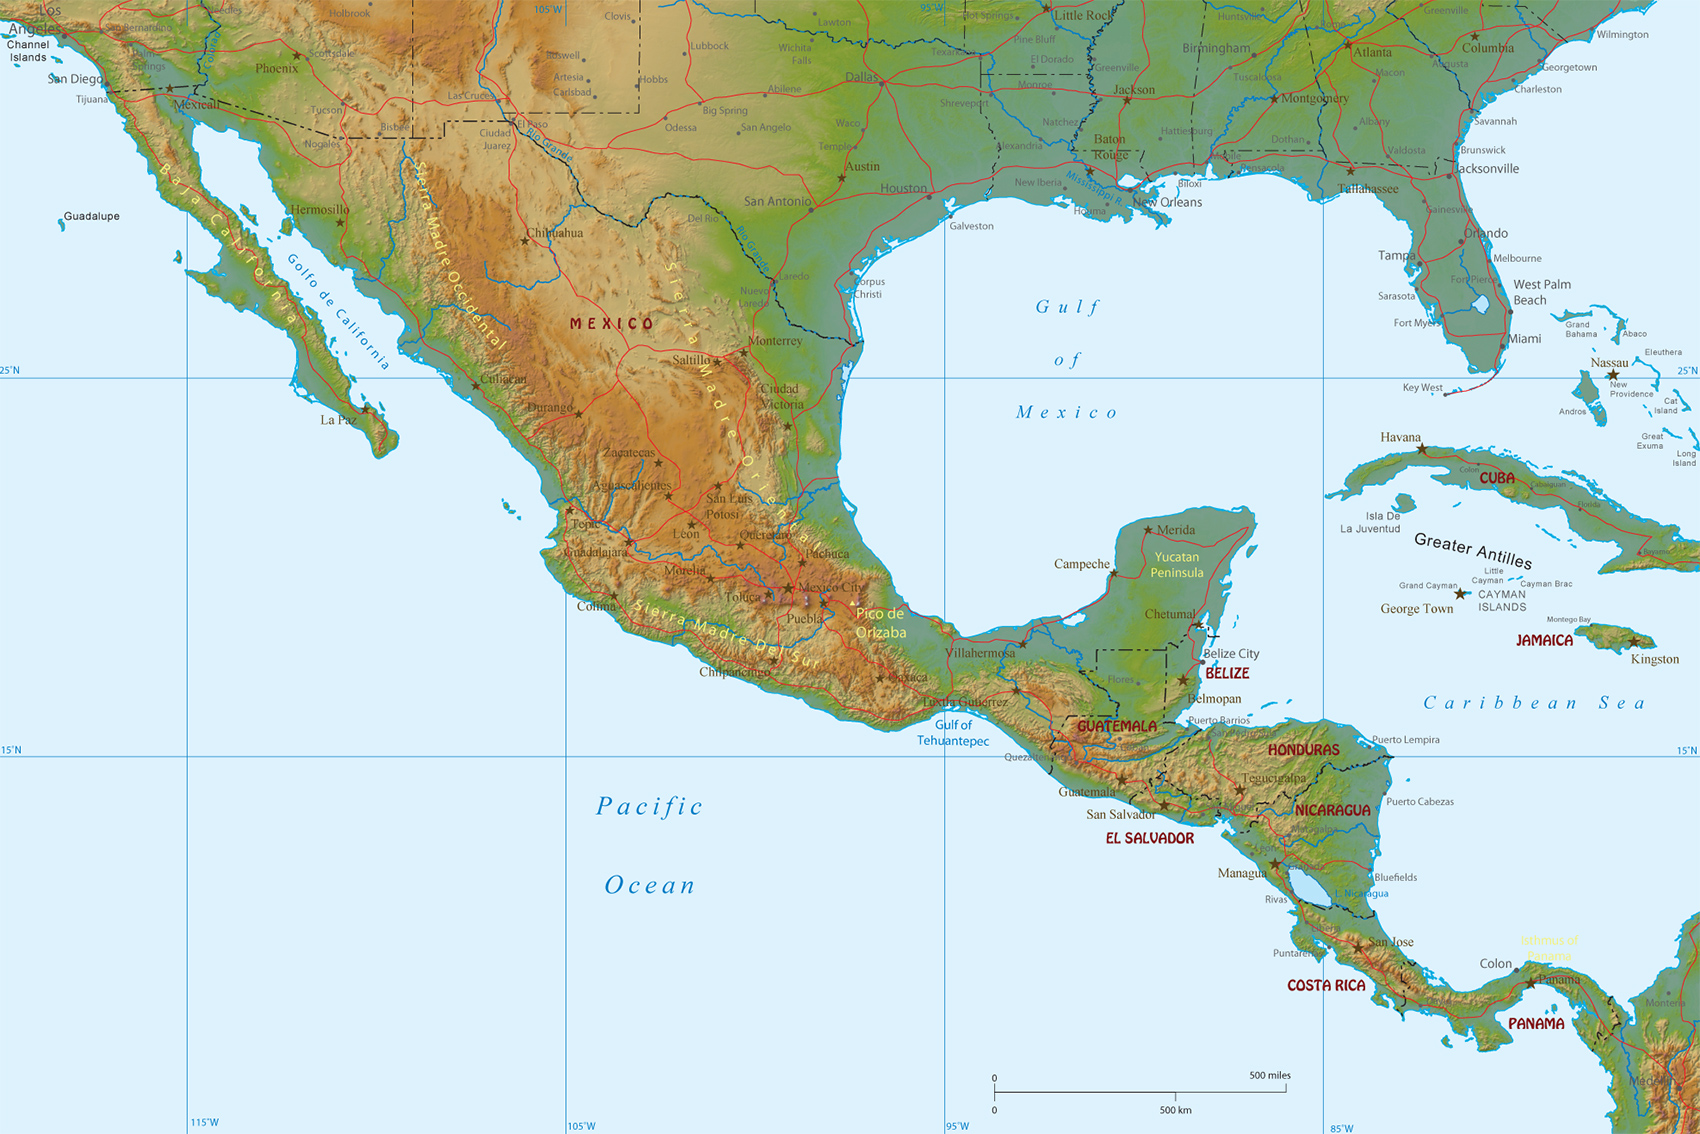 Physical Map of Mexico and Central America on peopling of the americas, mercator projection of the americas, geological map of the americas, language map of the americas, physical map southern africa, physical features of america, physical map china, world map of the americas, outline map of the americas, physical map sub-saharan africa, historical map of the americas, topographic map of the americas,